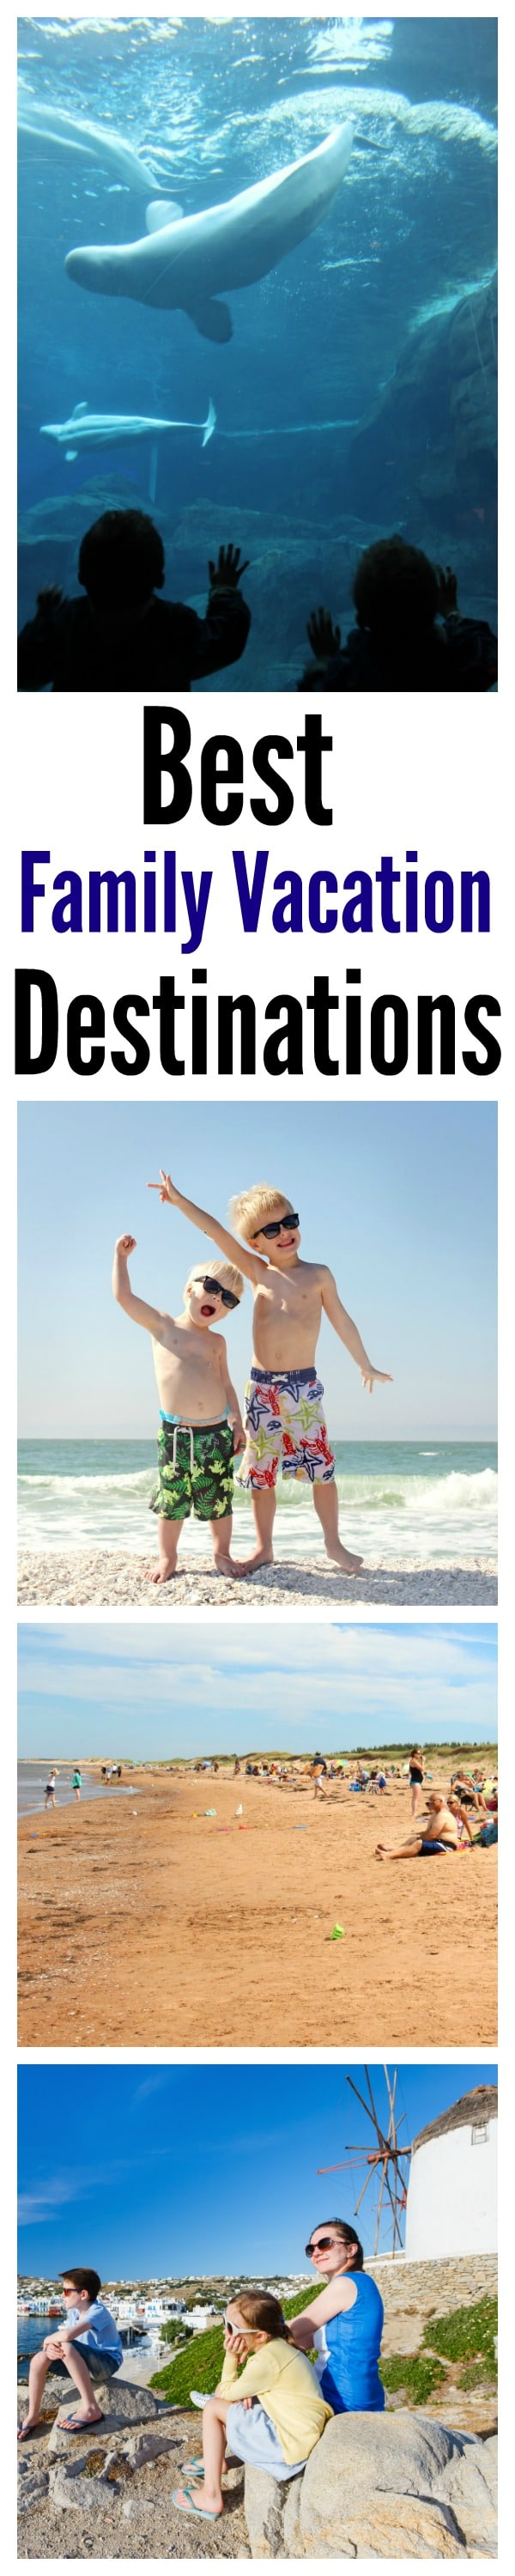 Best Family Vacation Destinations